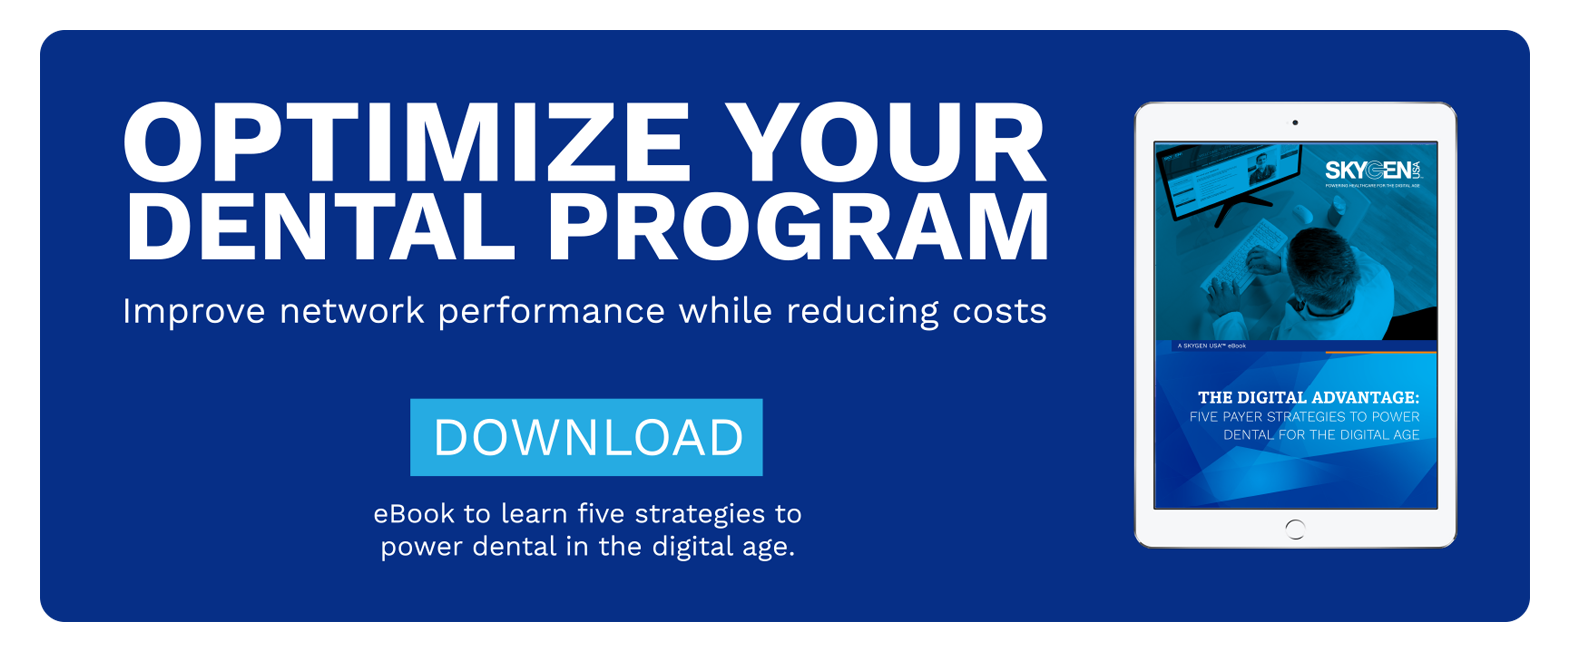 Optimize Your Dental Program - Download ebook to learn five strategies to power dental in the digital age